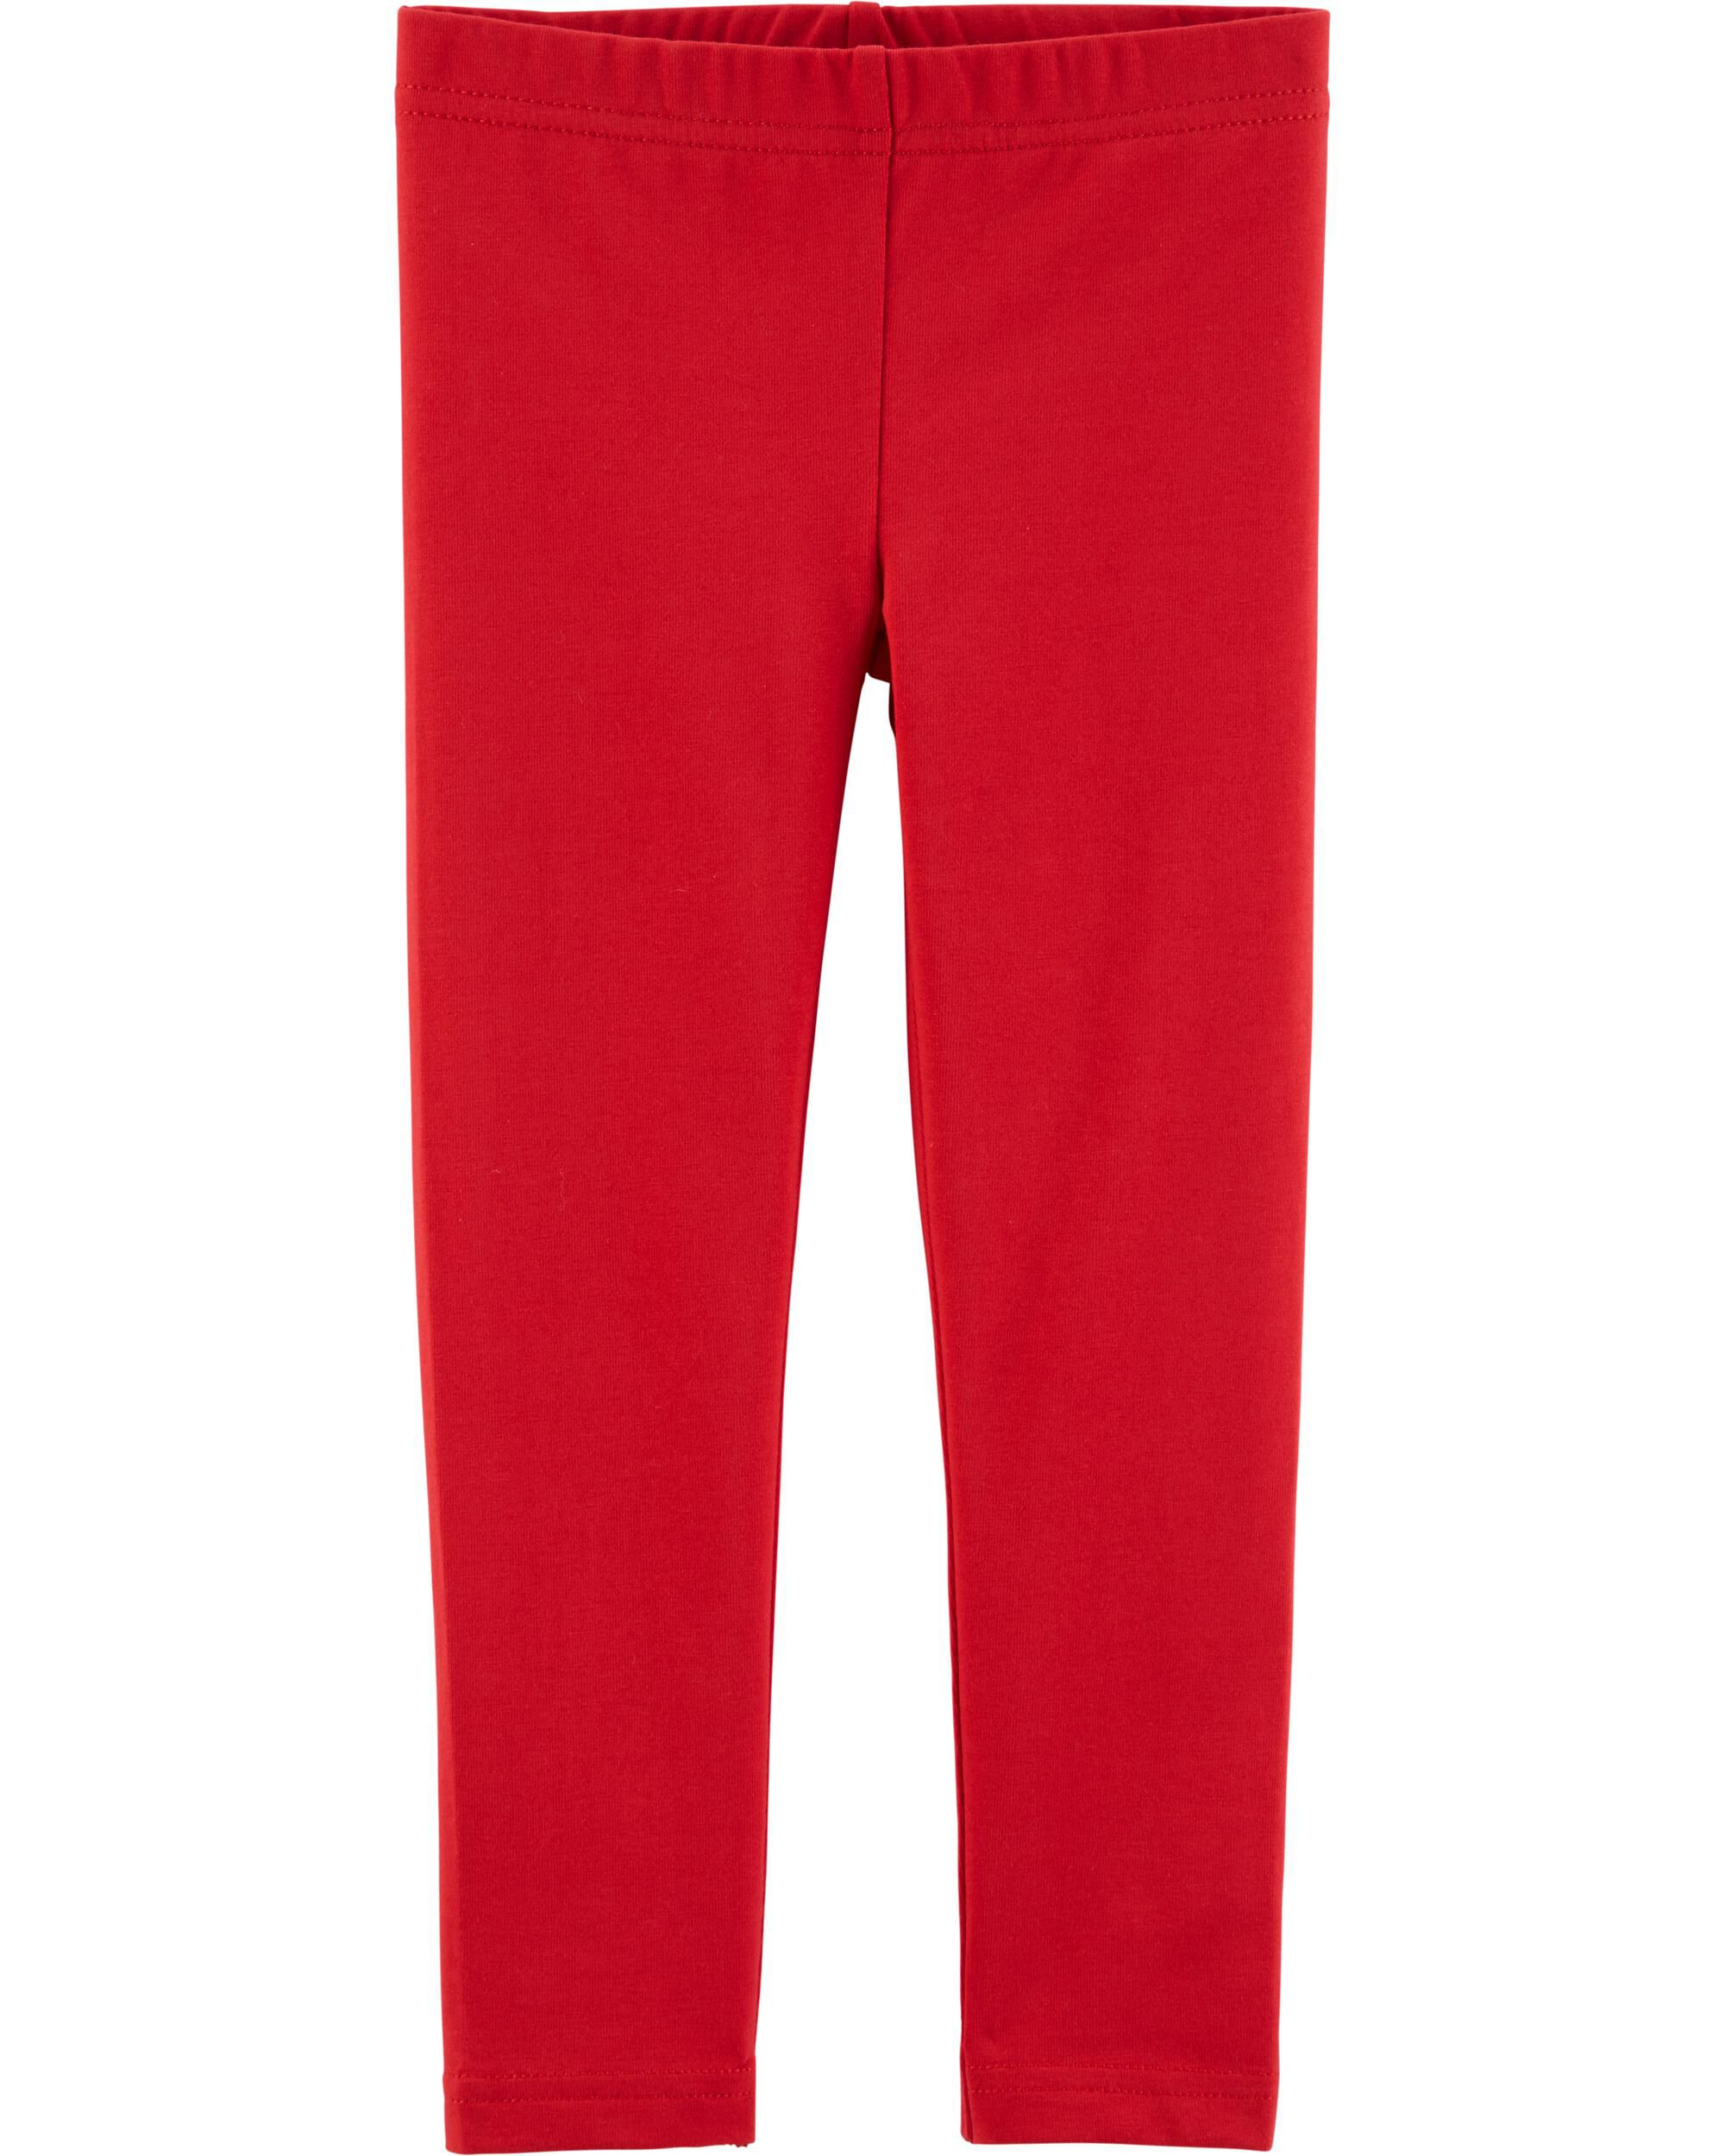 *CLEARANCE* Red Legging